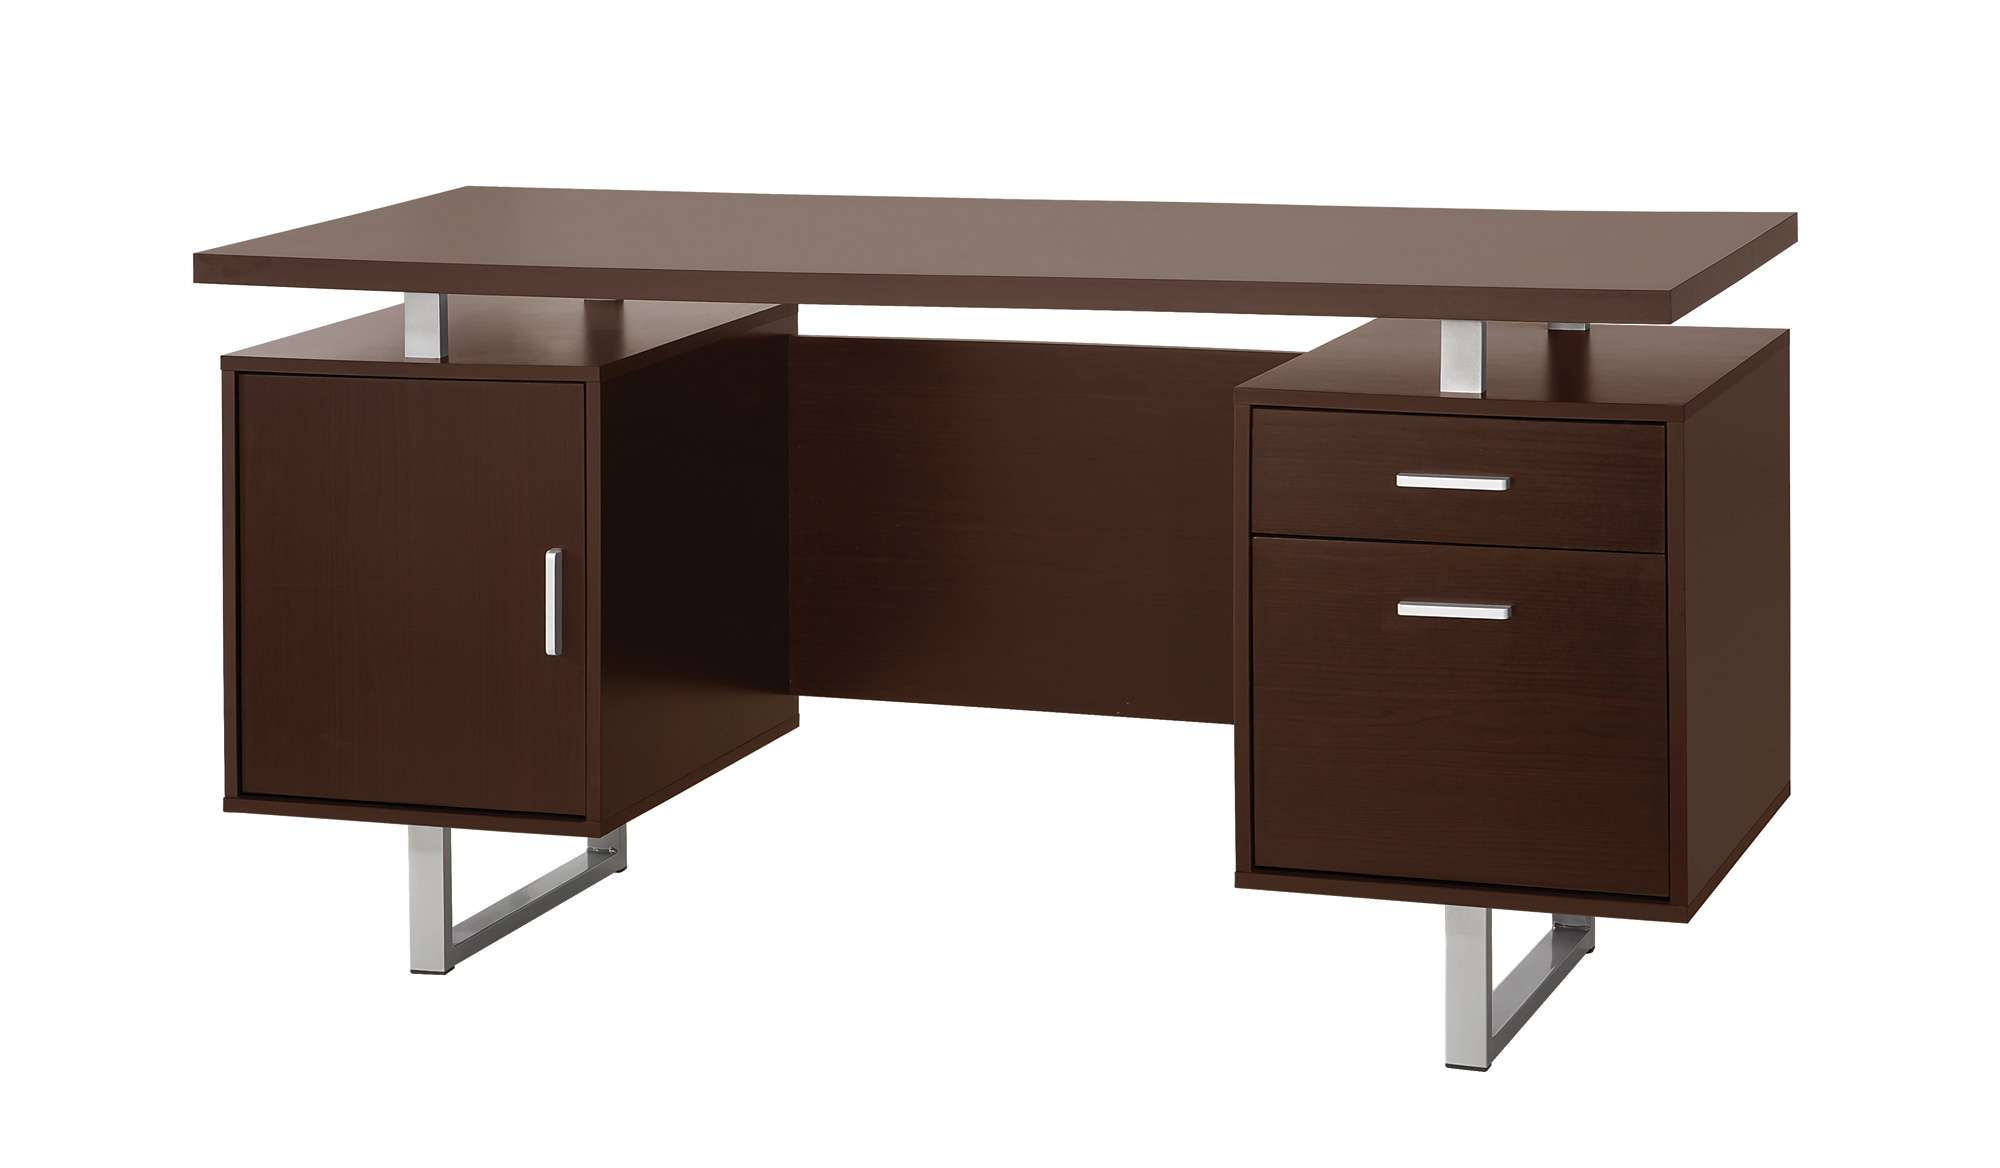 Glavan Cappuccino Double Pedestal Office Desk With Metal Sled Legs And Floating Top